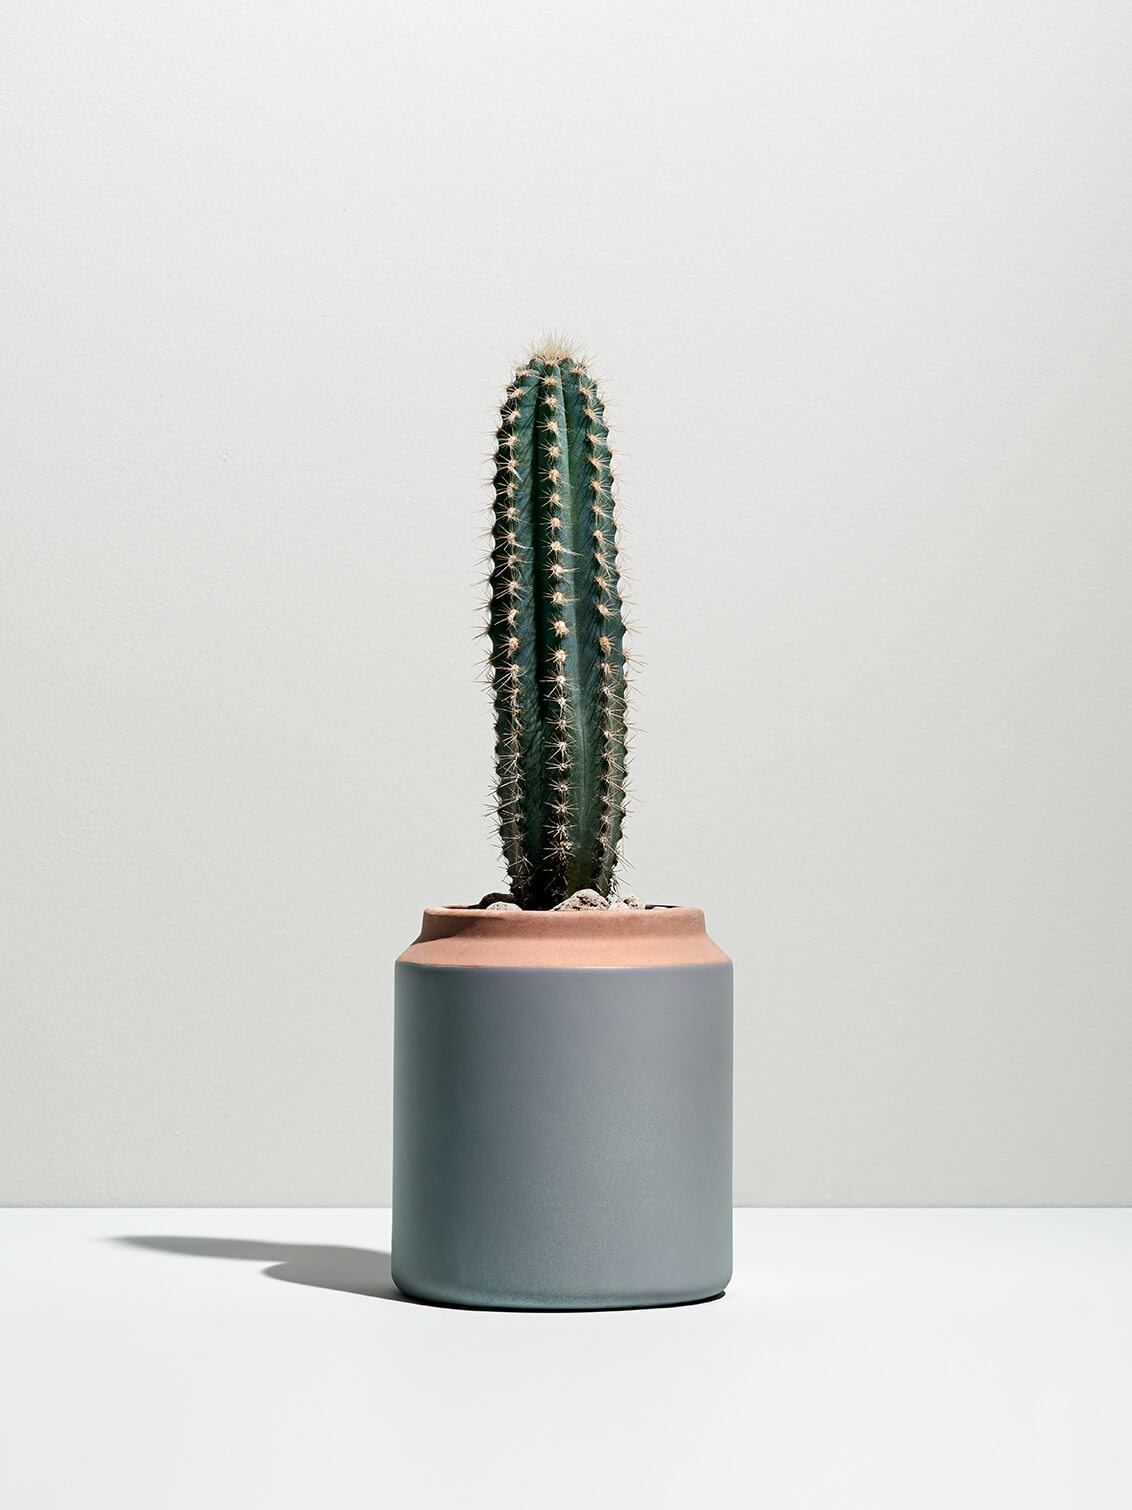 An upright cactus in a grey flower pot